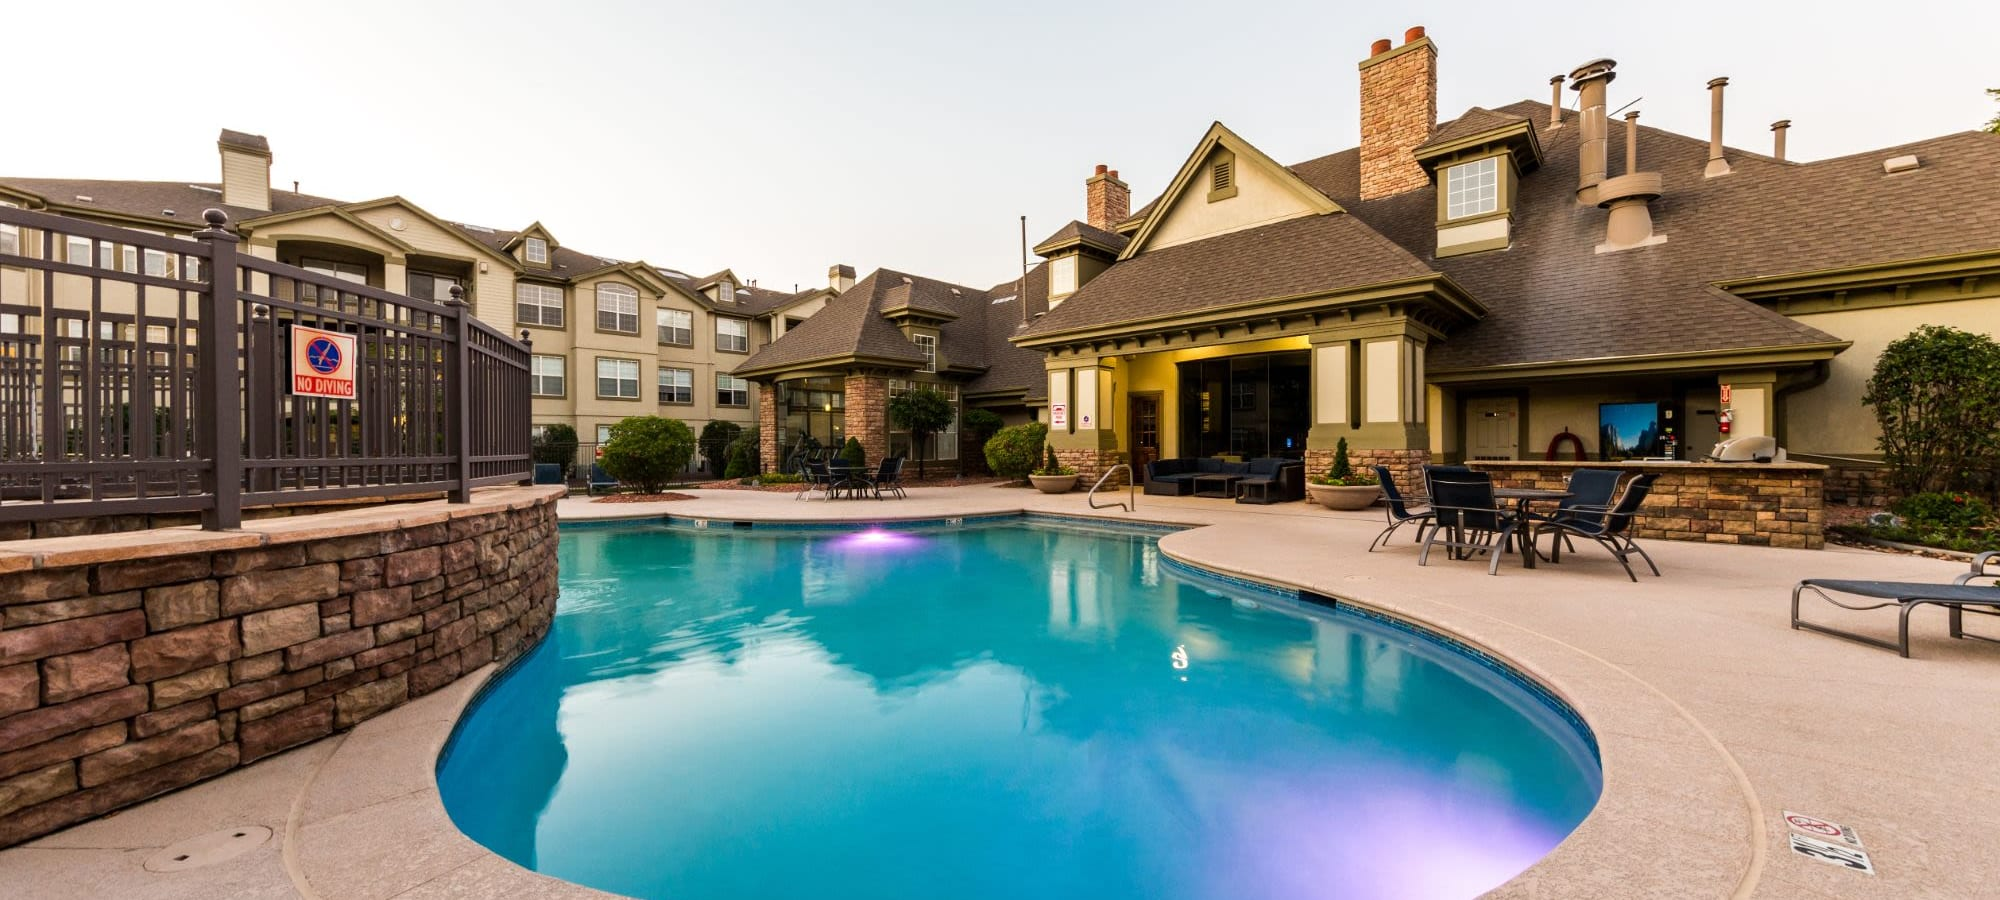 Schedule a tour of Marquis at Town Centre in Broomfield, Colorado